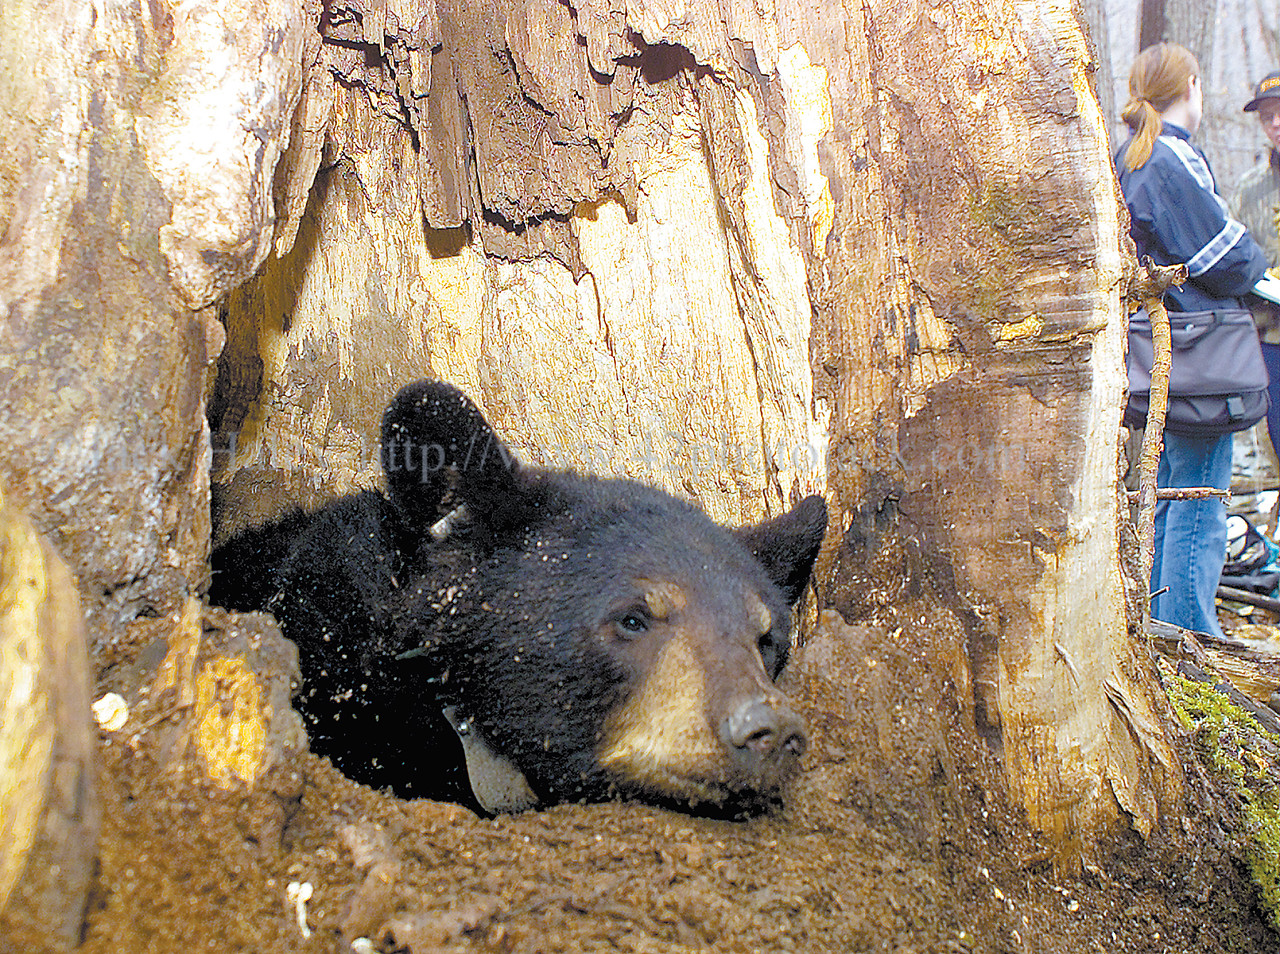 jhbear1 - A female bear, roughly 14 months old starts to have the ability to focus her eyes after being placed back into her den in a hollow tree after being drugged and checked and recollared with a radio transmitter.